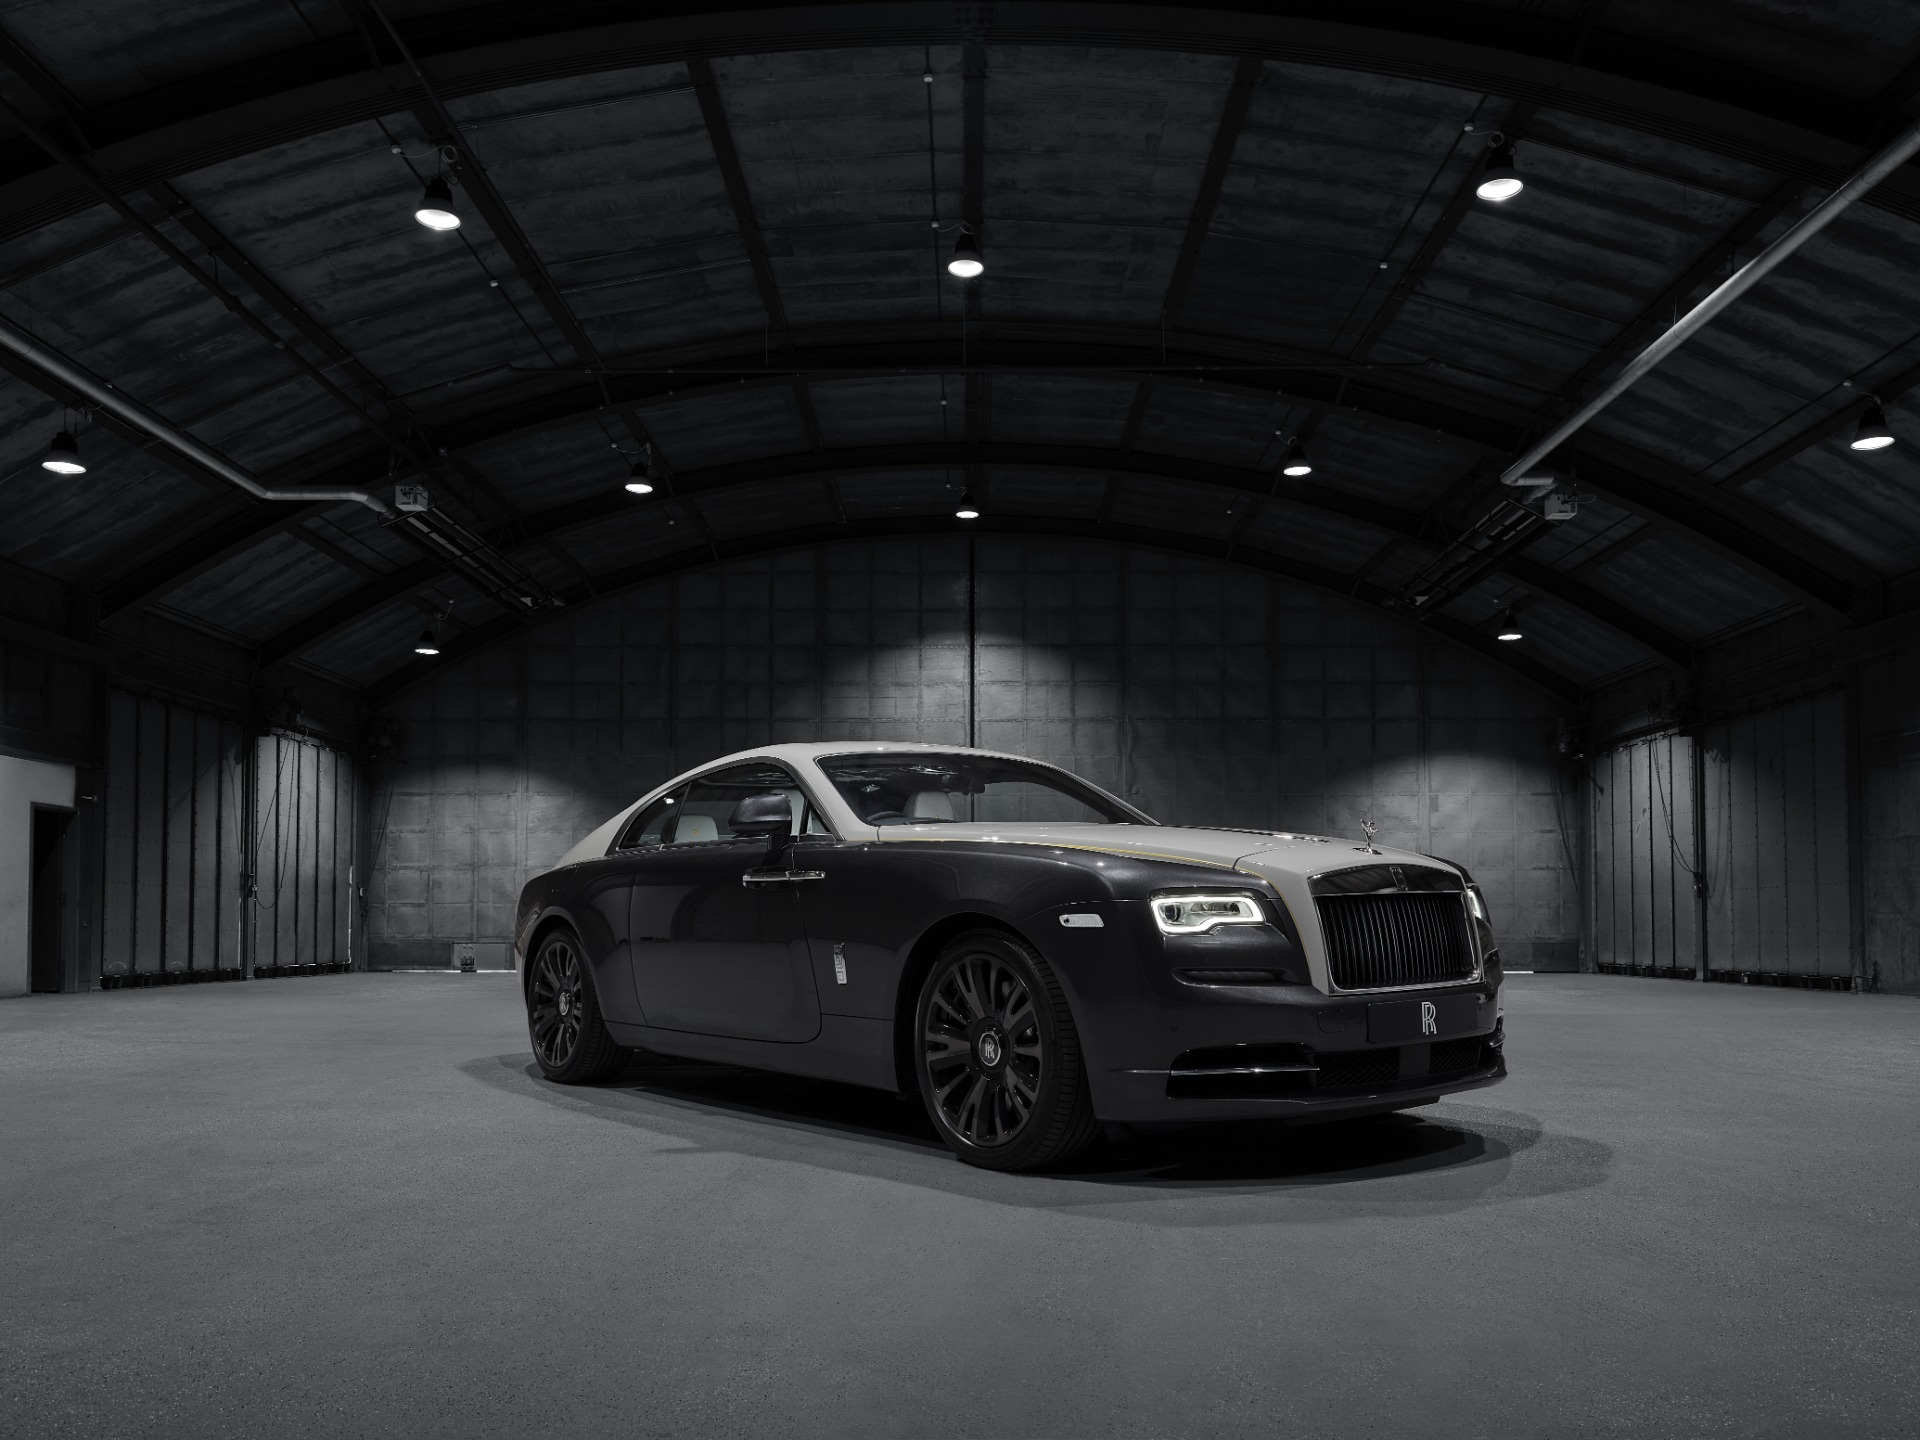 New 2020 Rolls-Royce Wraith Eagle For Sale 424475 In Greenwich, CT